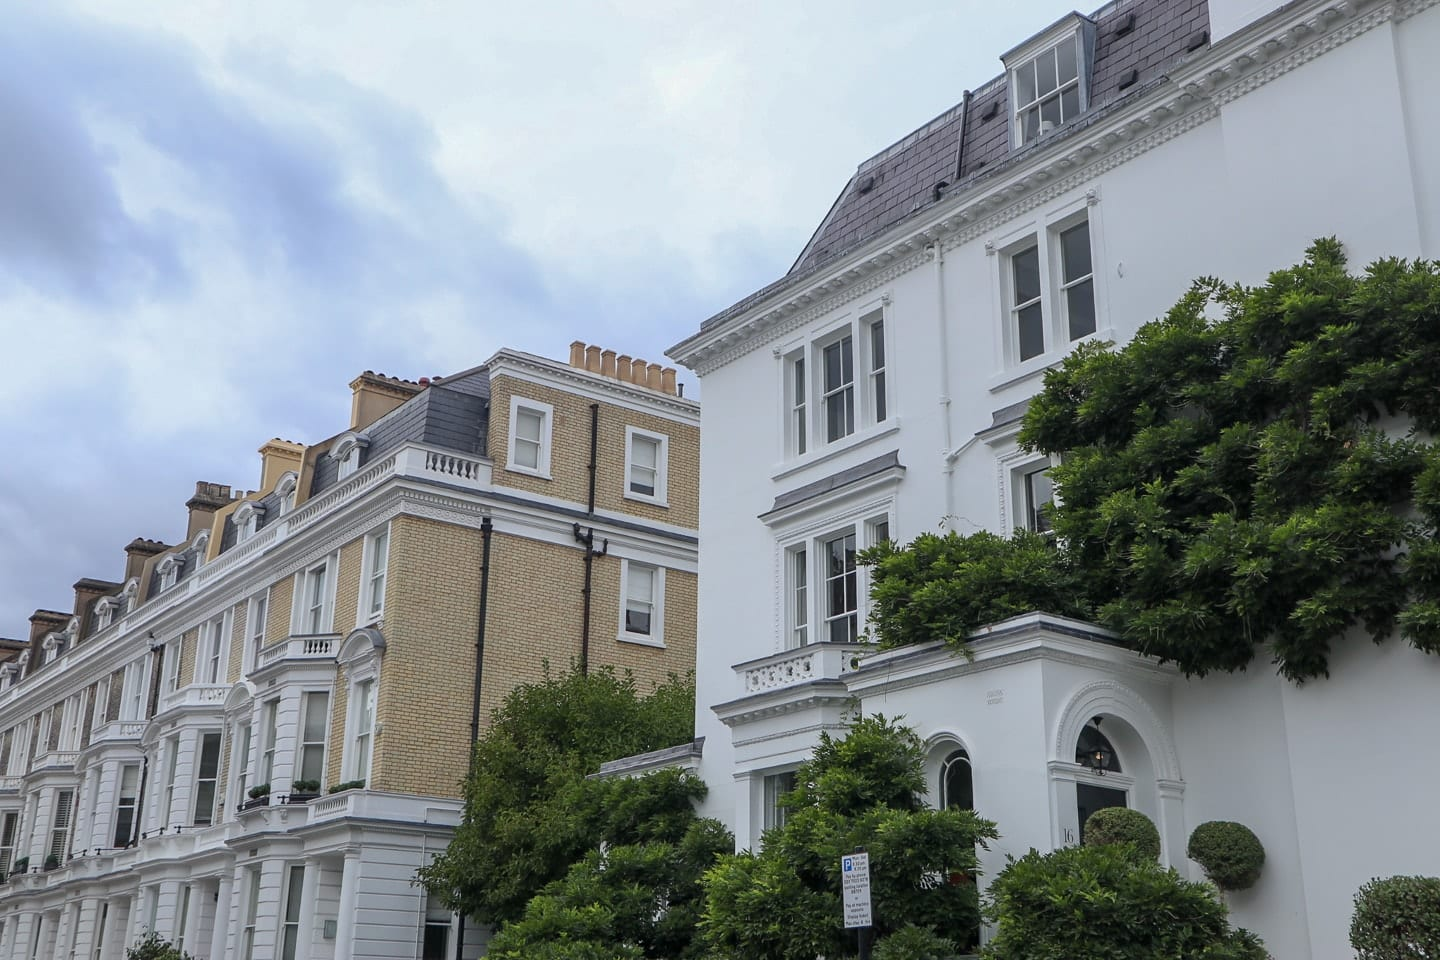 The Perfect Afternoon in Kensington, London